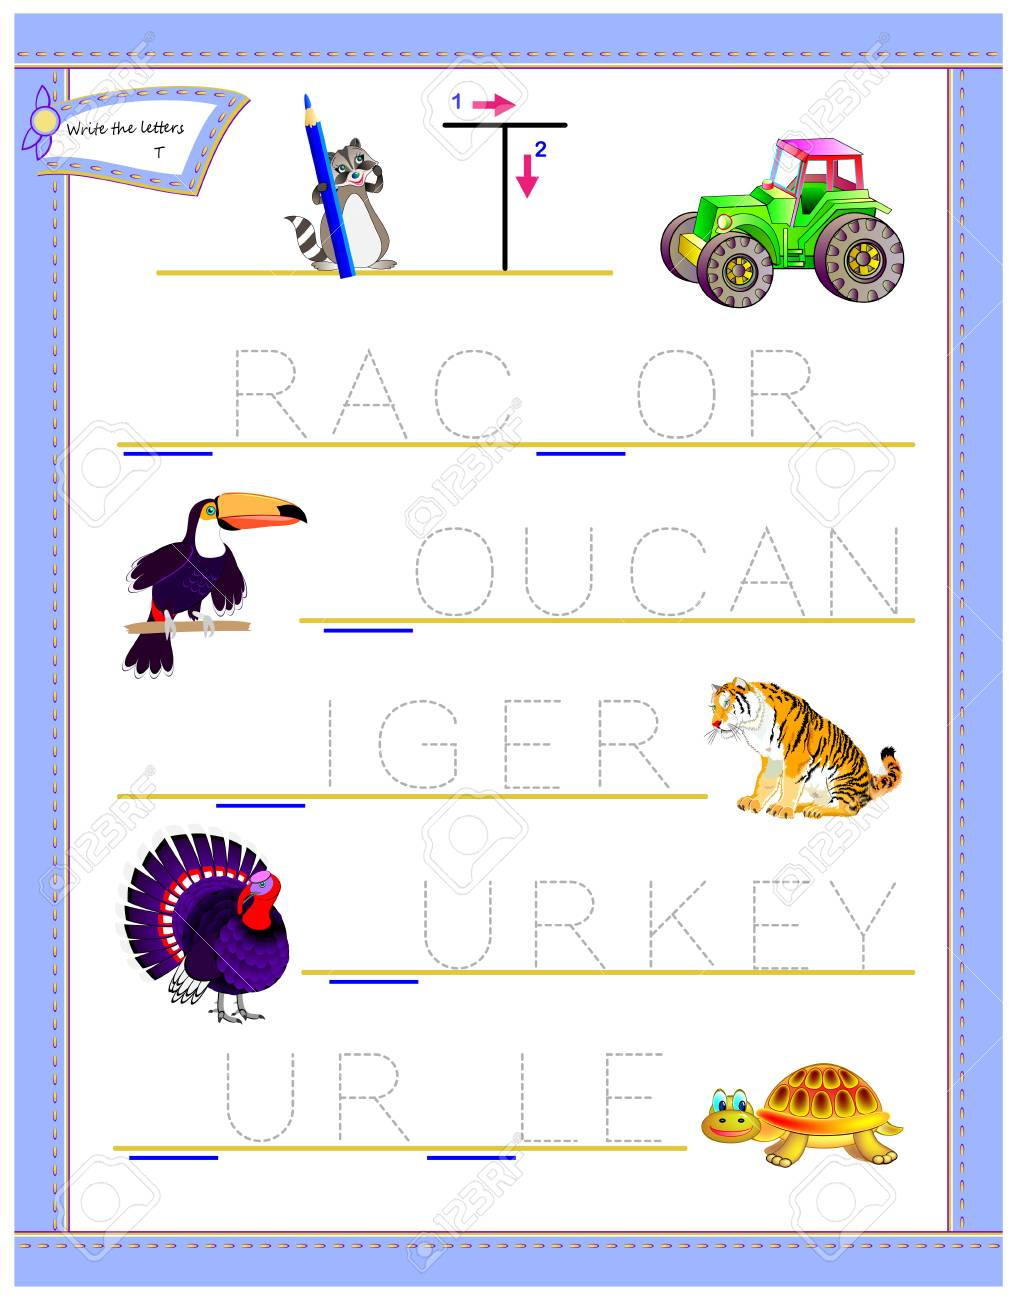 Tracing Letter T For Study English Alphabet. Printable Worksheet - Letter T Puzzle Printable